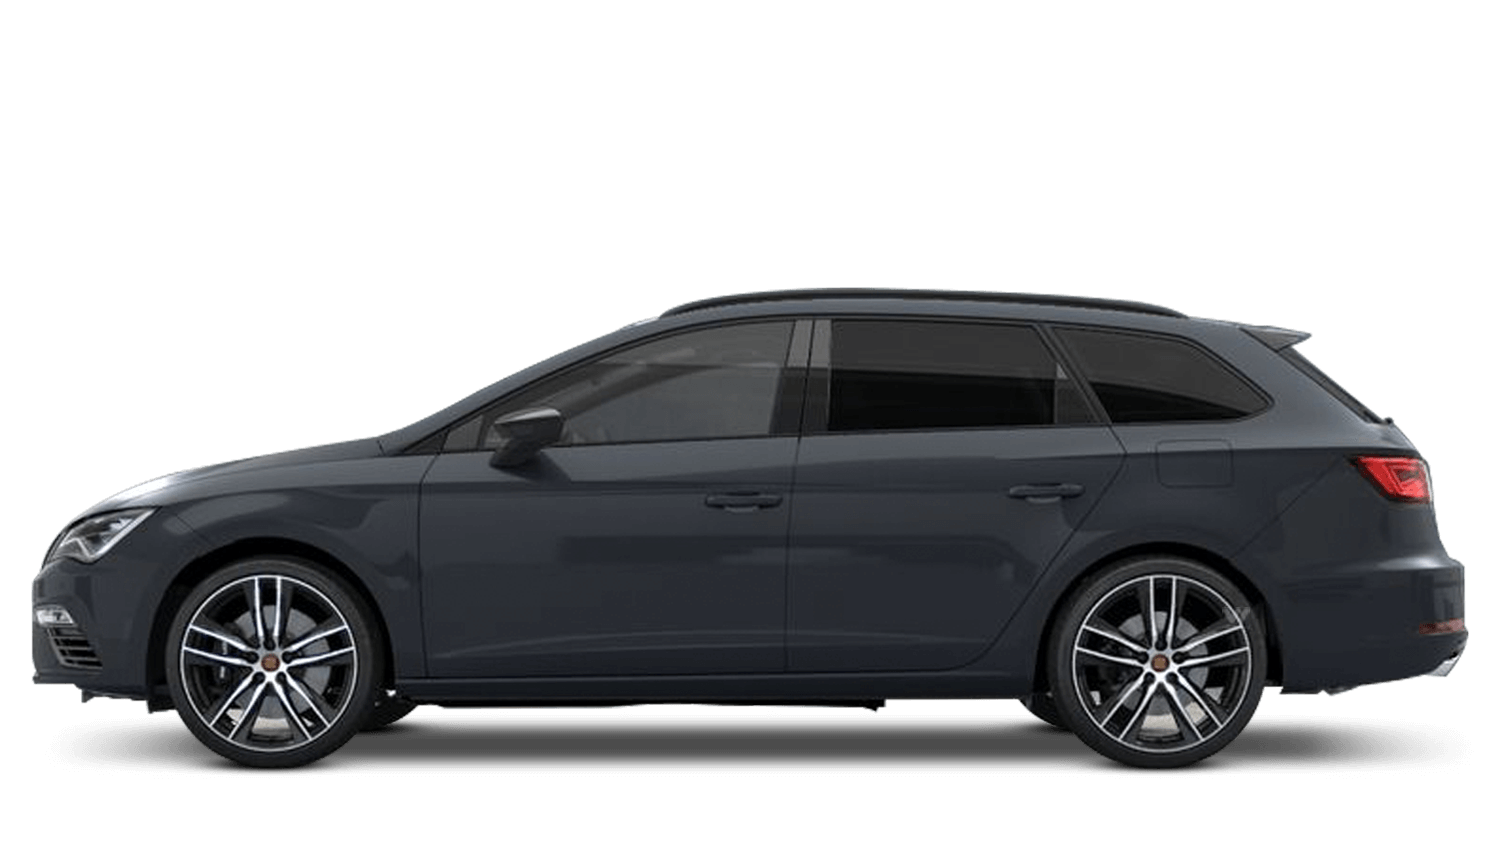 Magnetic Grey (Metallic) Leon Estate CUPRA